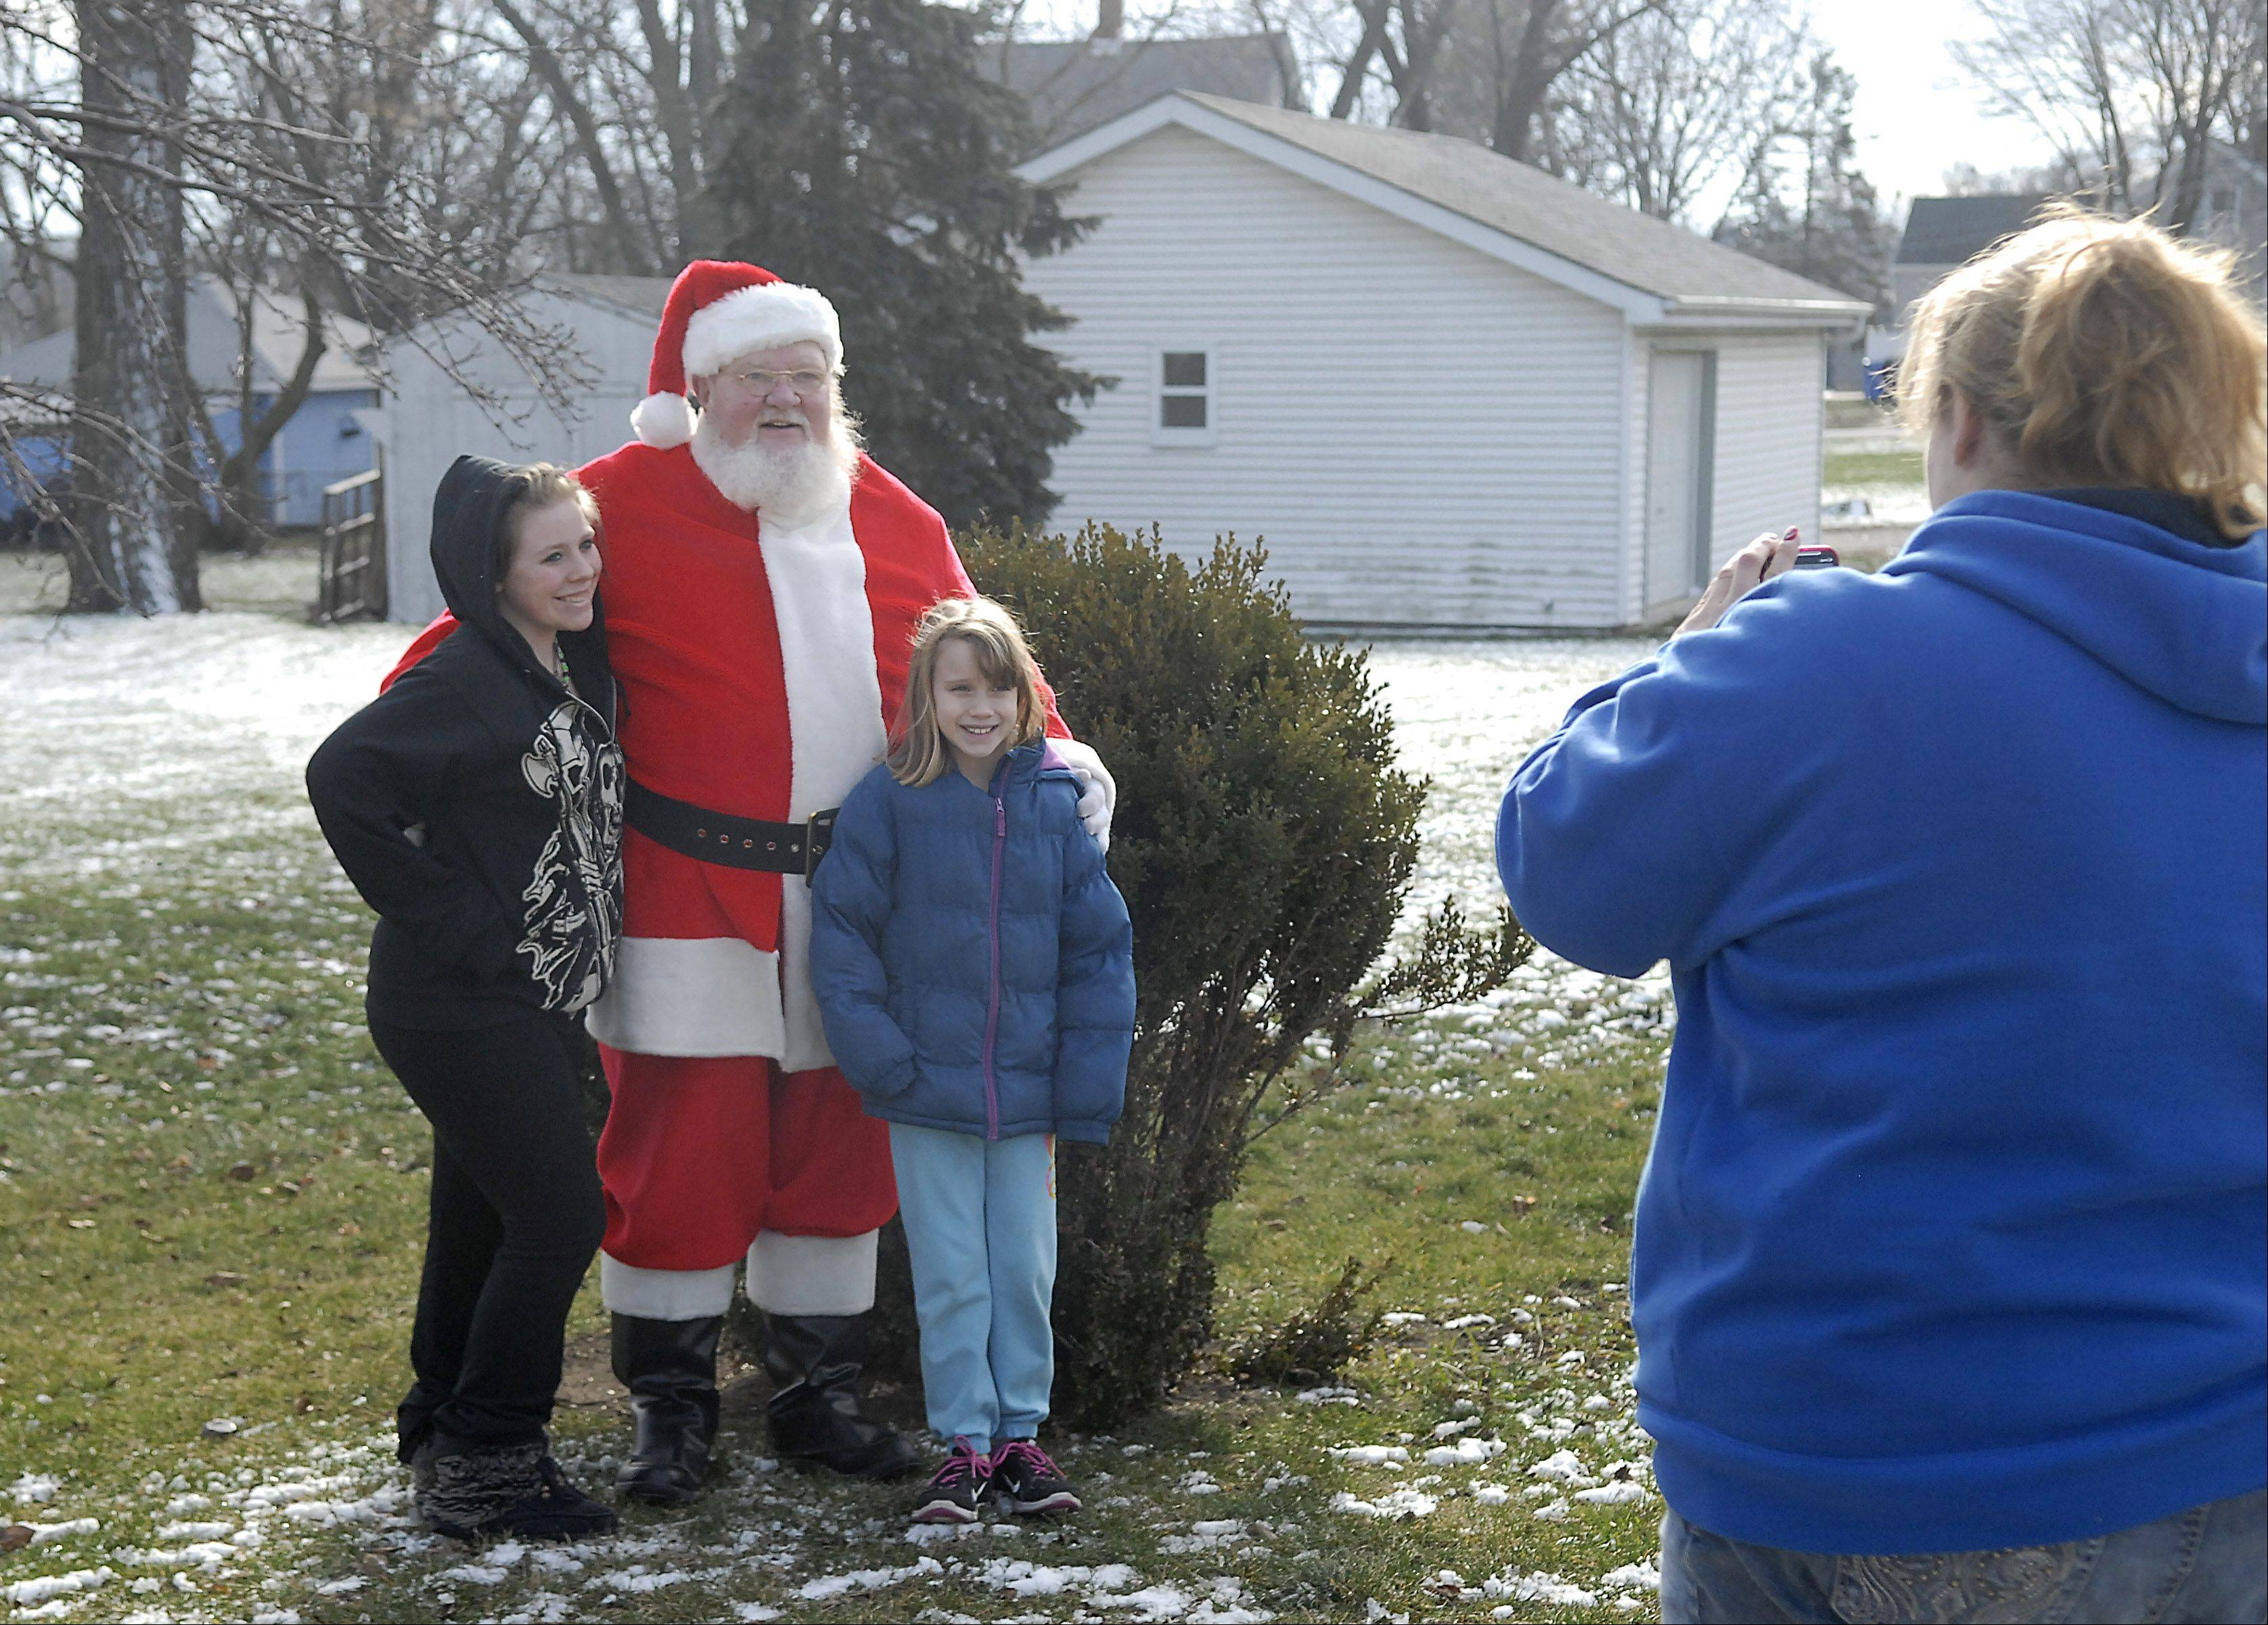 Nichole Gibson of South Elgin takes a photo of her daughters Alyssa Goerr, 16, and Danielle Gibson, 9, with Santa.